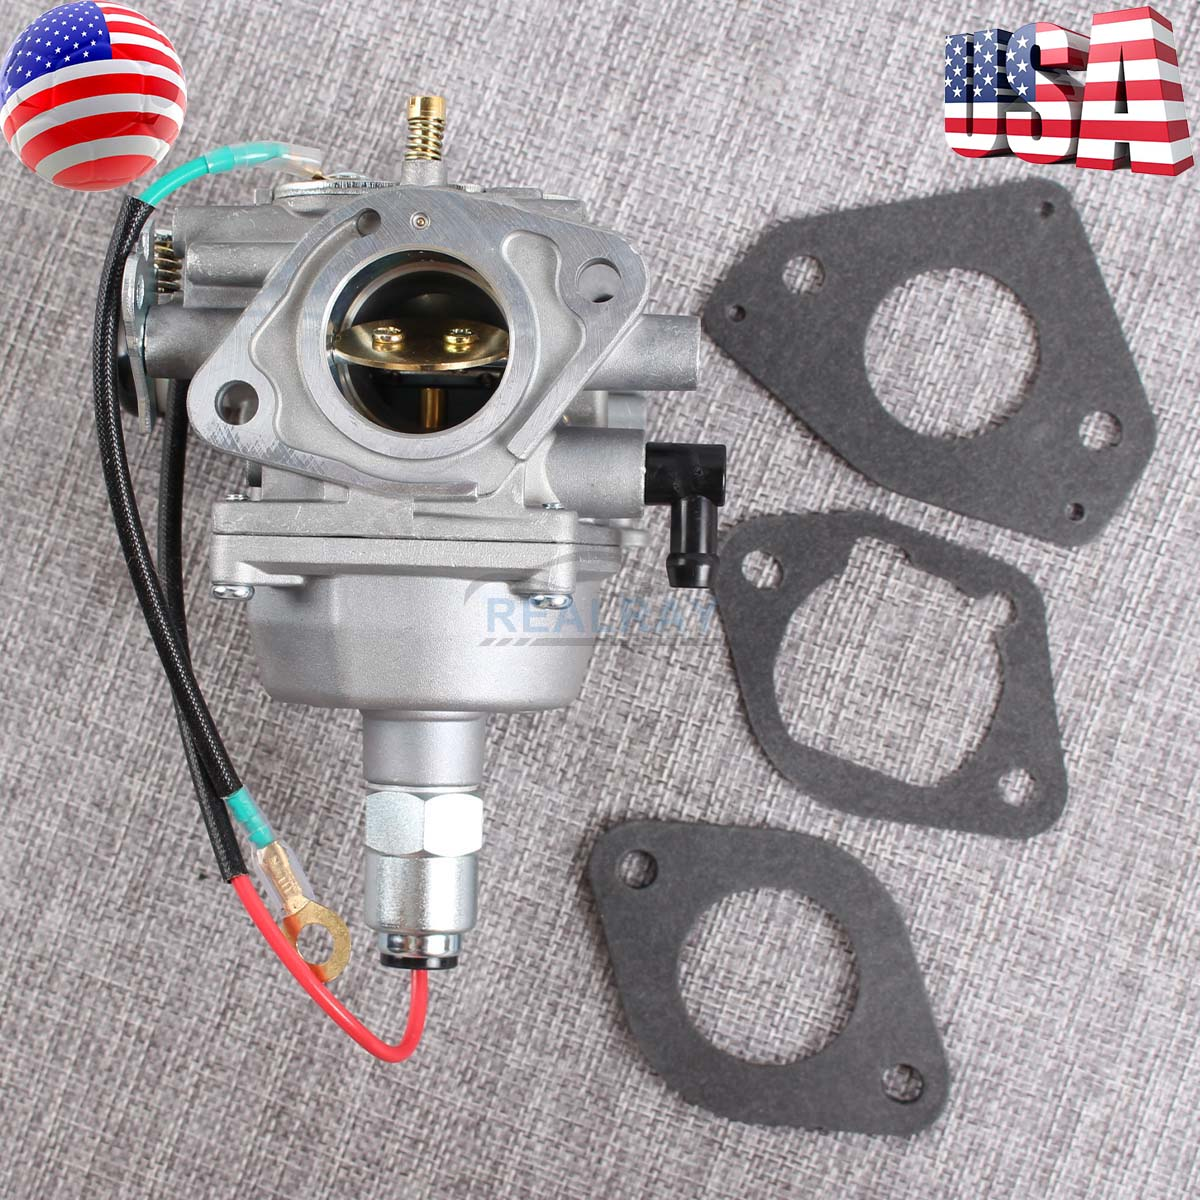 Details about Carburetor for Kohler CV22 CV23 CV670 CV675 CV680 CV730  24-853-61 24-853-169-S